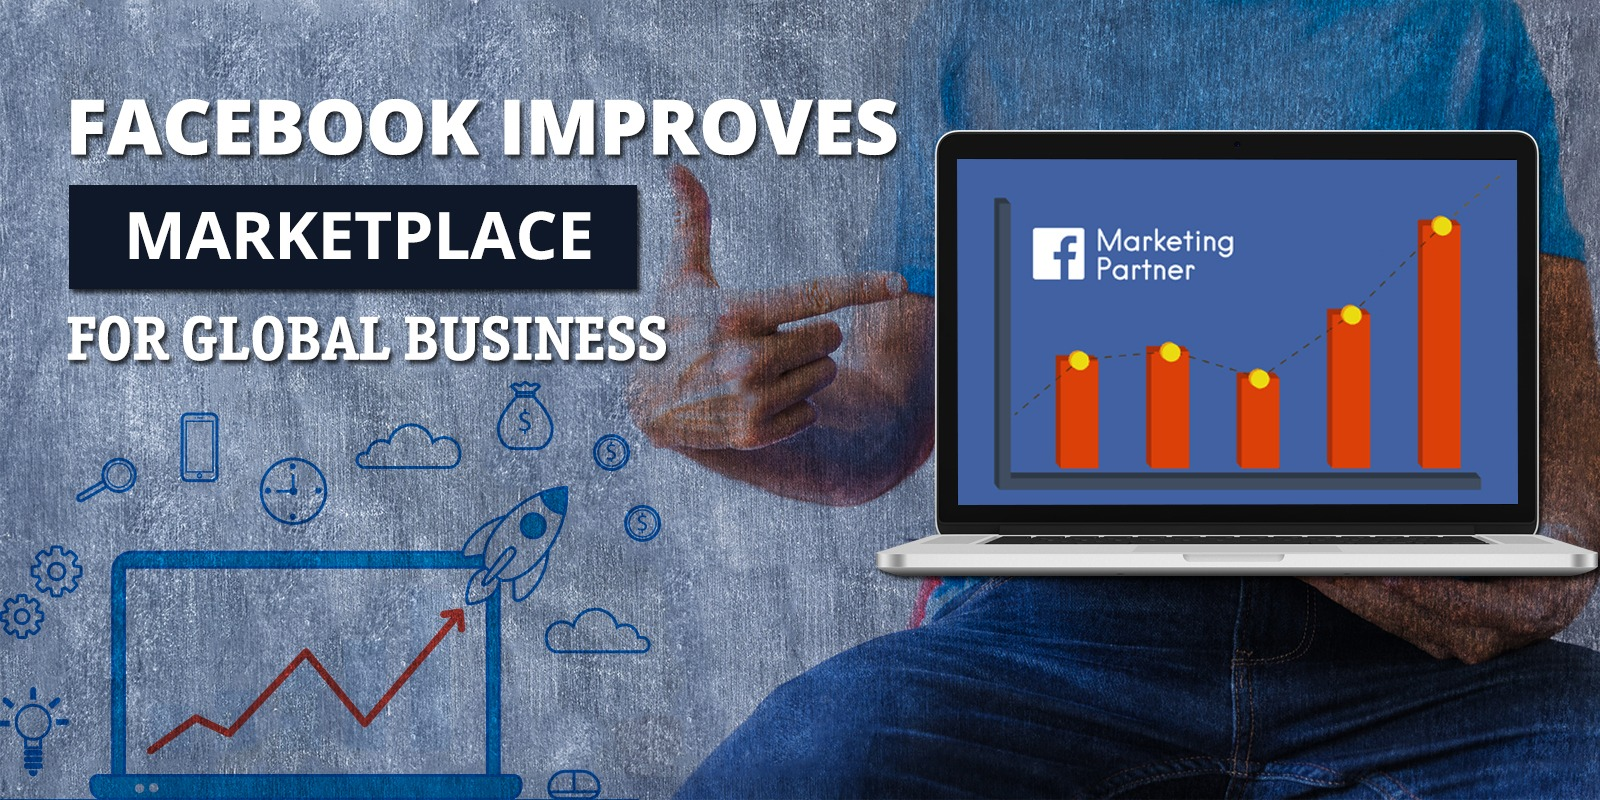 Facebook Improves Marketplace for Global Business